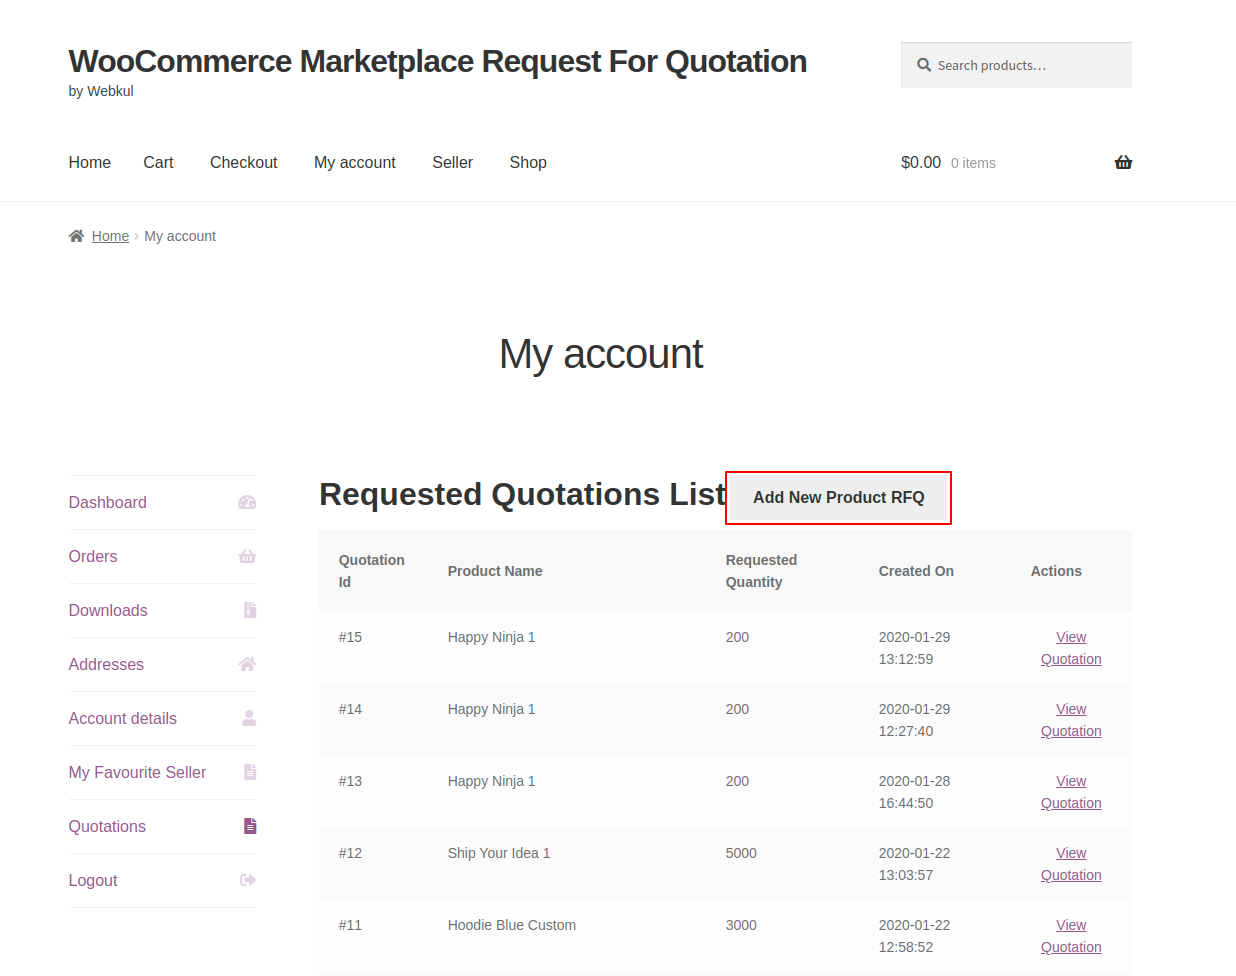 webkul-woocommerce-marketplace-request-for-quotation-customer-end-add-new-product-rfq